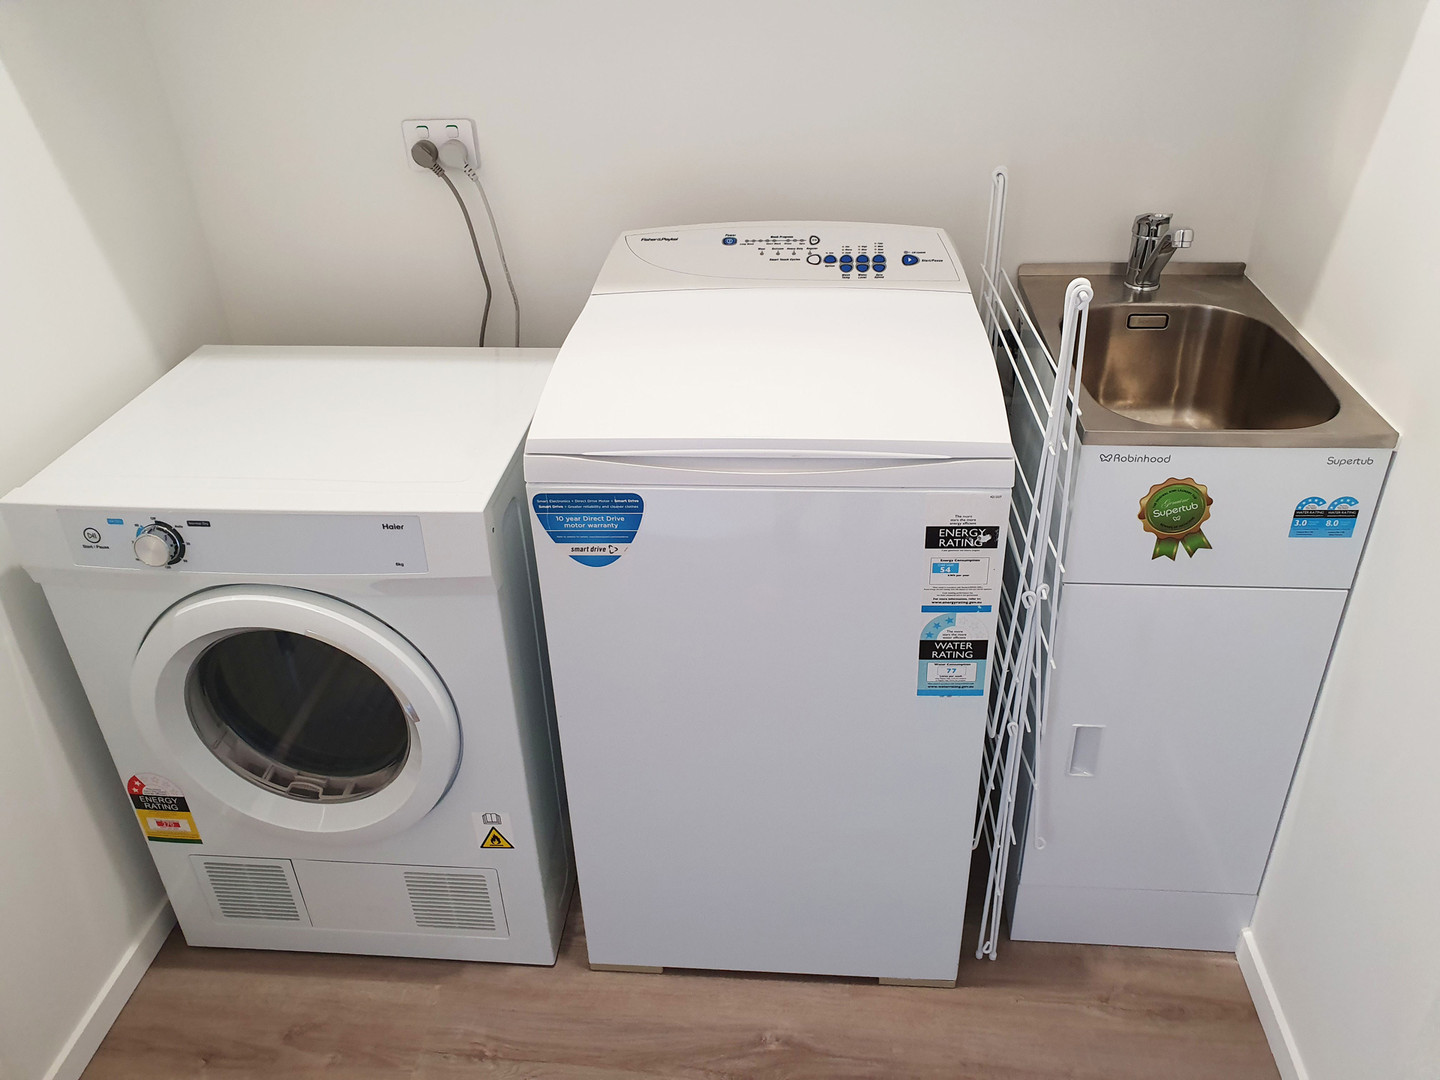 Full laundry with washer and dryer